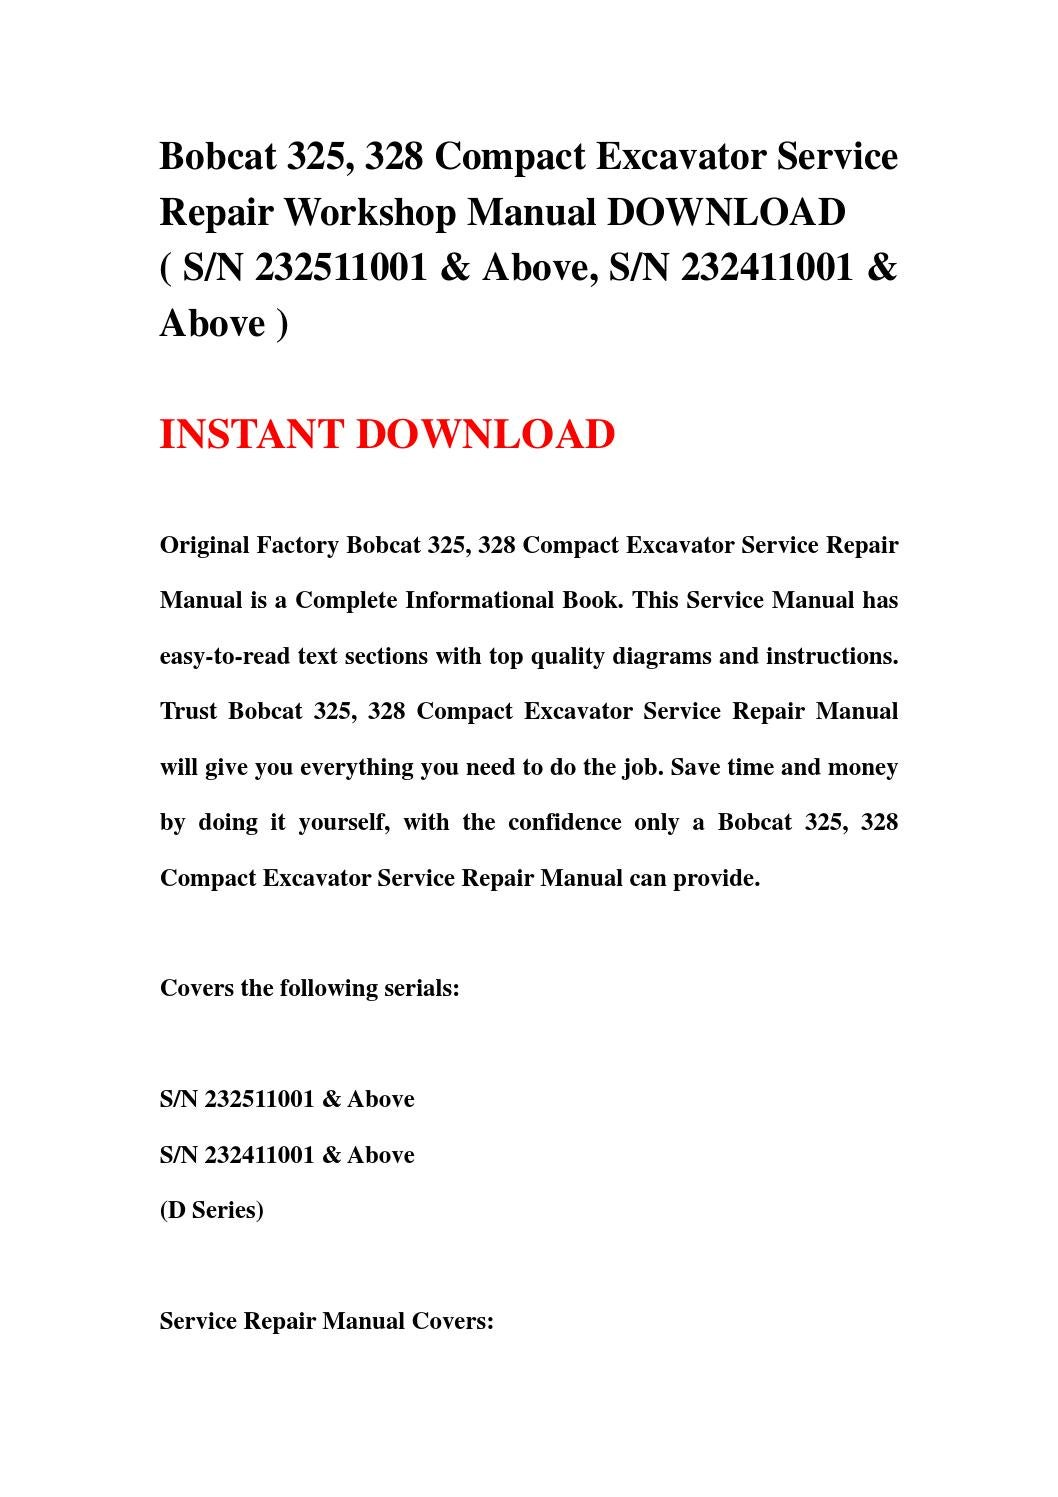 Bobcat 325, 328 compact excavator service repair workshop manual download  by hsfgbsehb - issuu